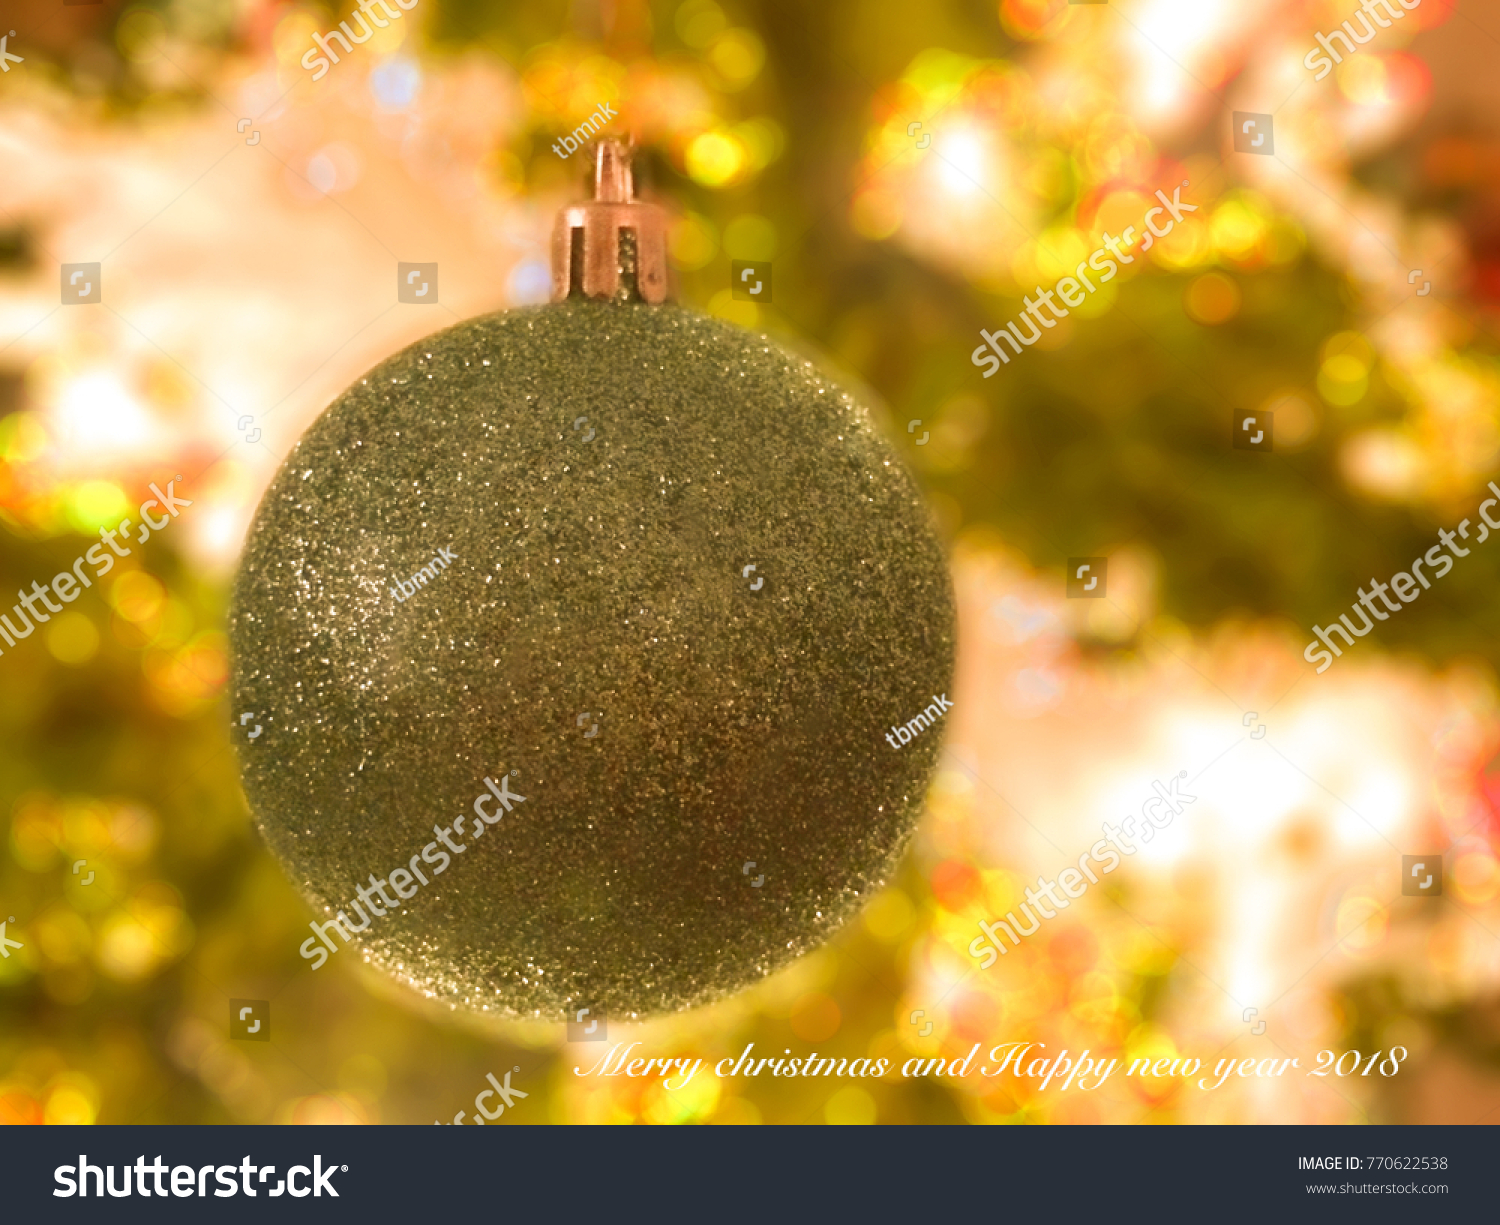 christmas ball hang on christmas tree with copy space for text merry christmas and happy